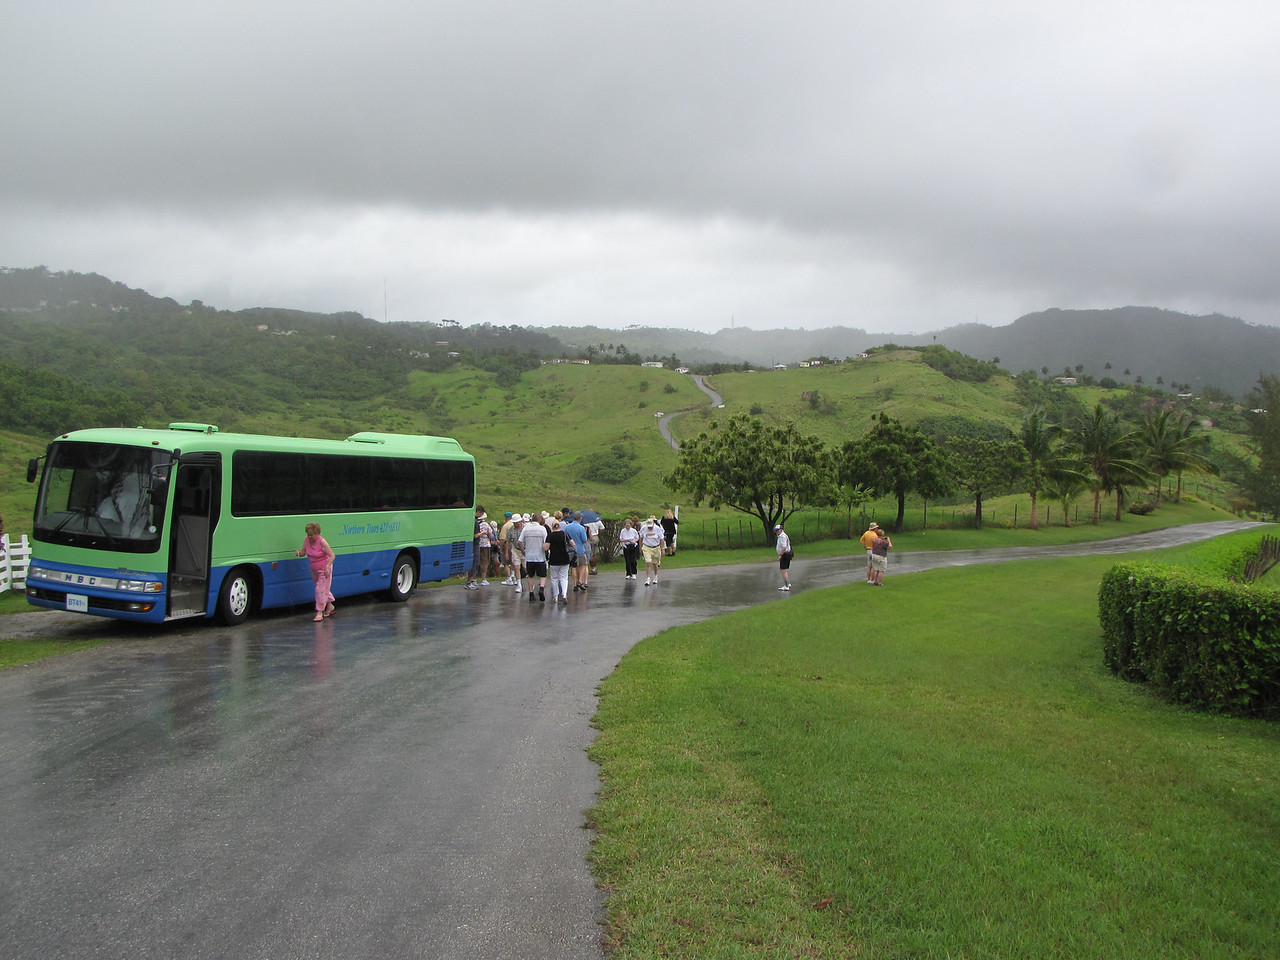 The countryside was beautiful, but unfortunately it was raining again.